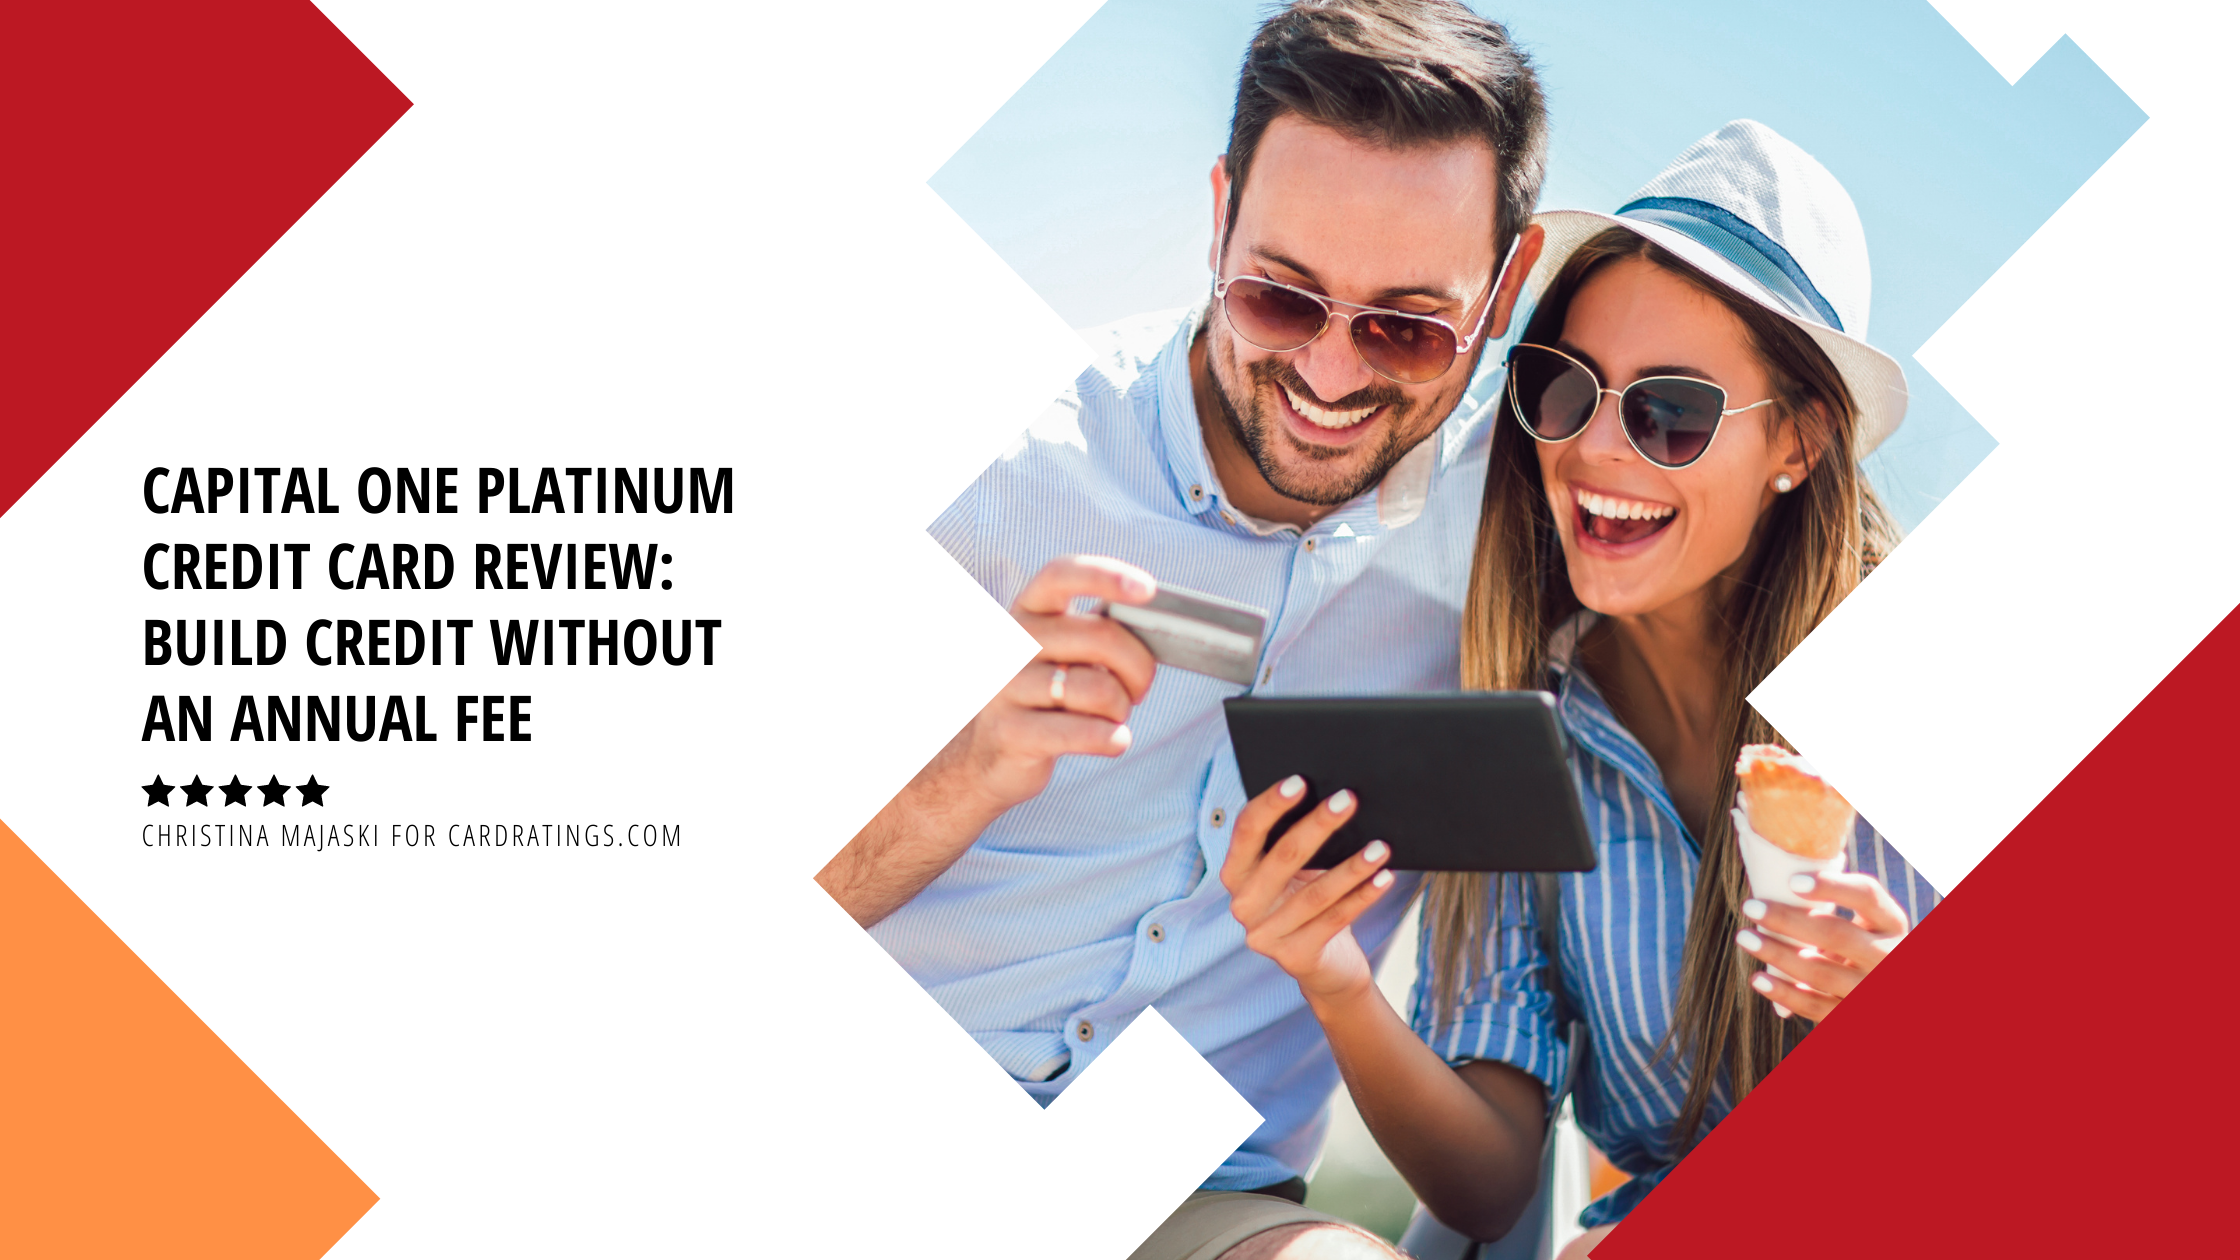 Capital One Platinum Credit Card Review: Build credit without an annual fee